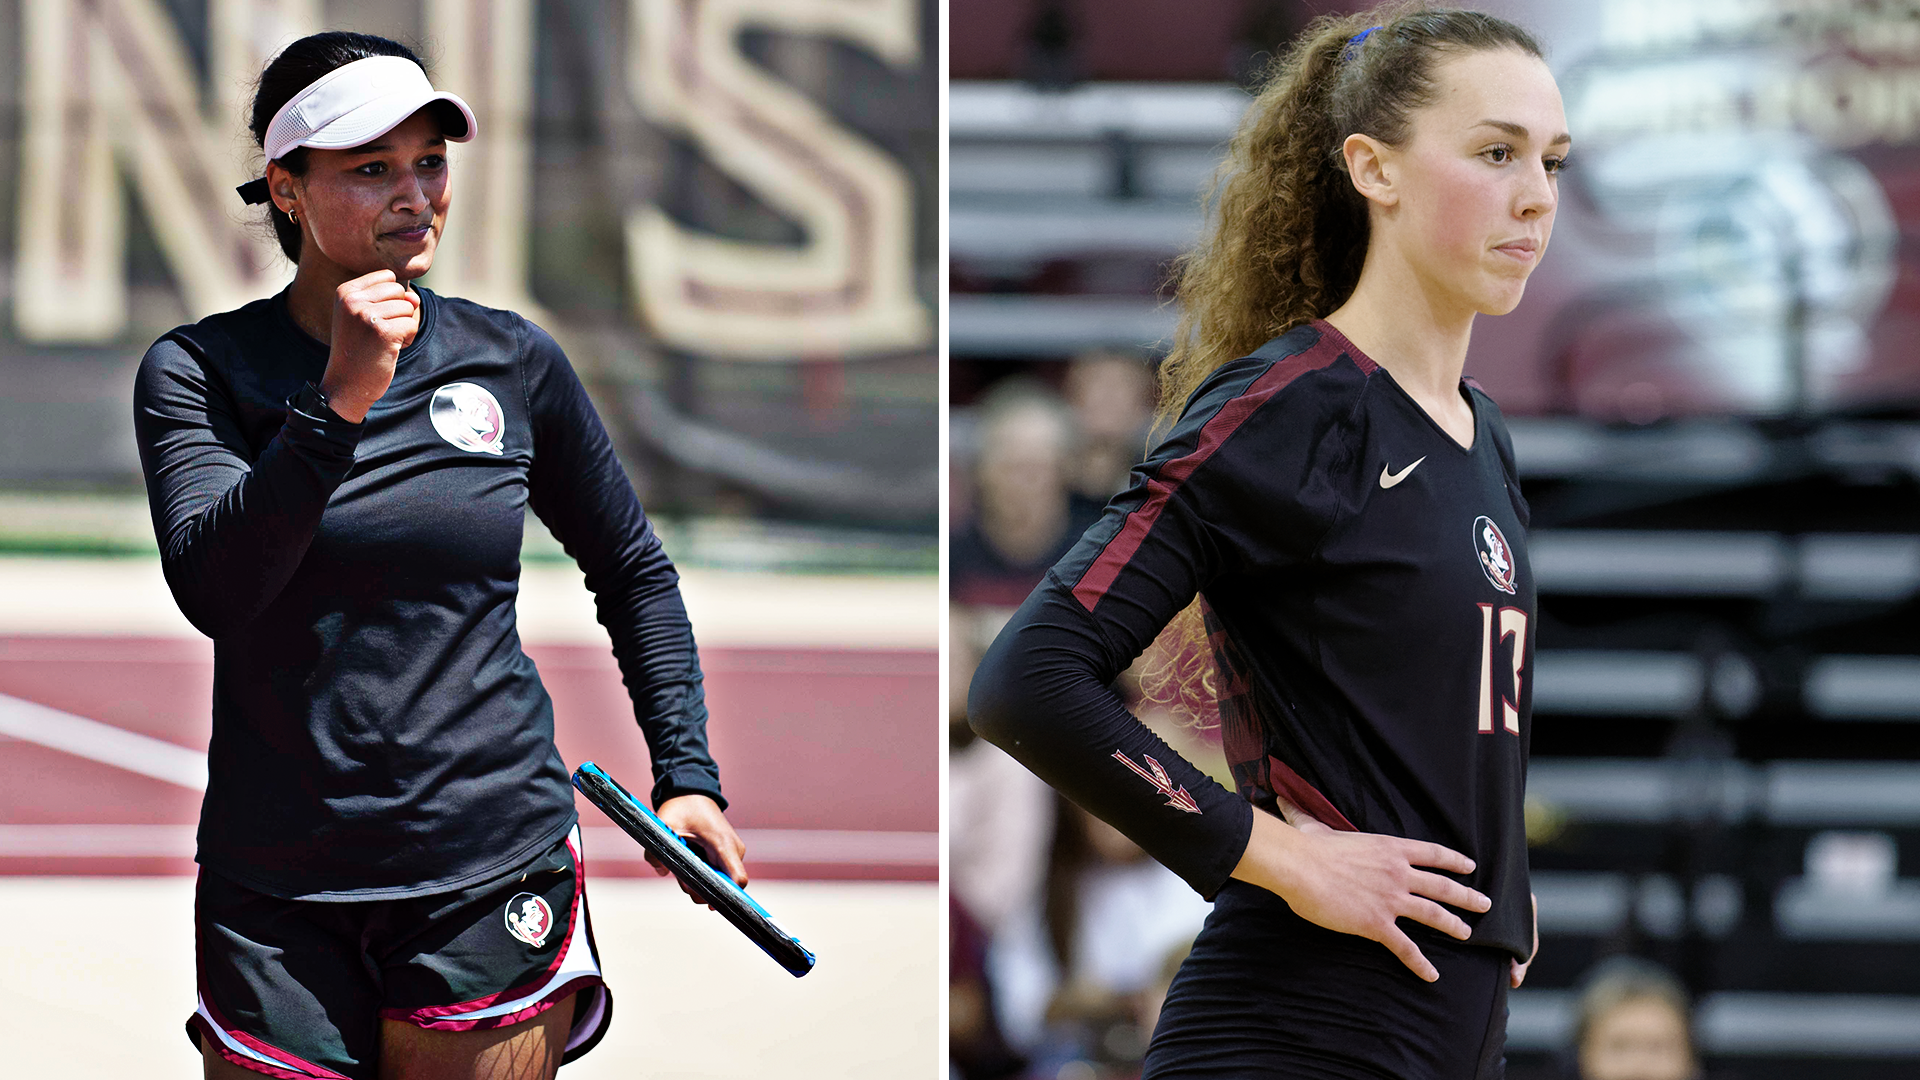 Knuth, Das Nominated for NCAA Woman of the Year